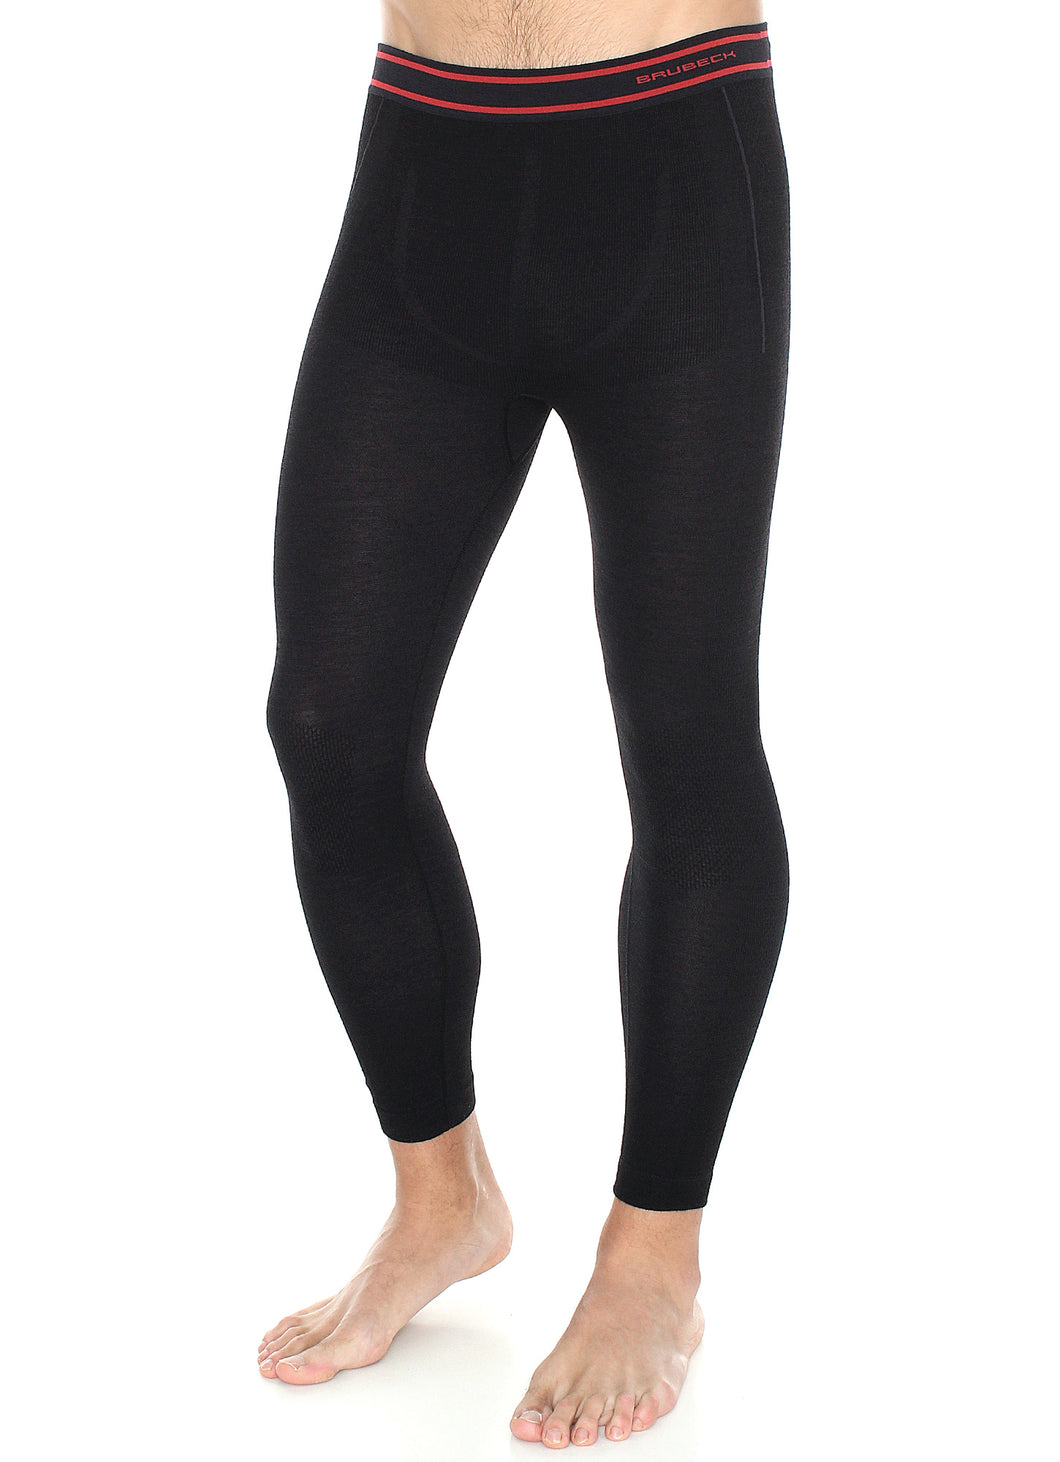 Men's bottoms active wool pants